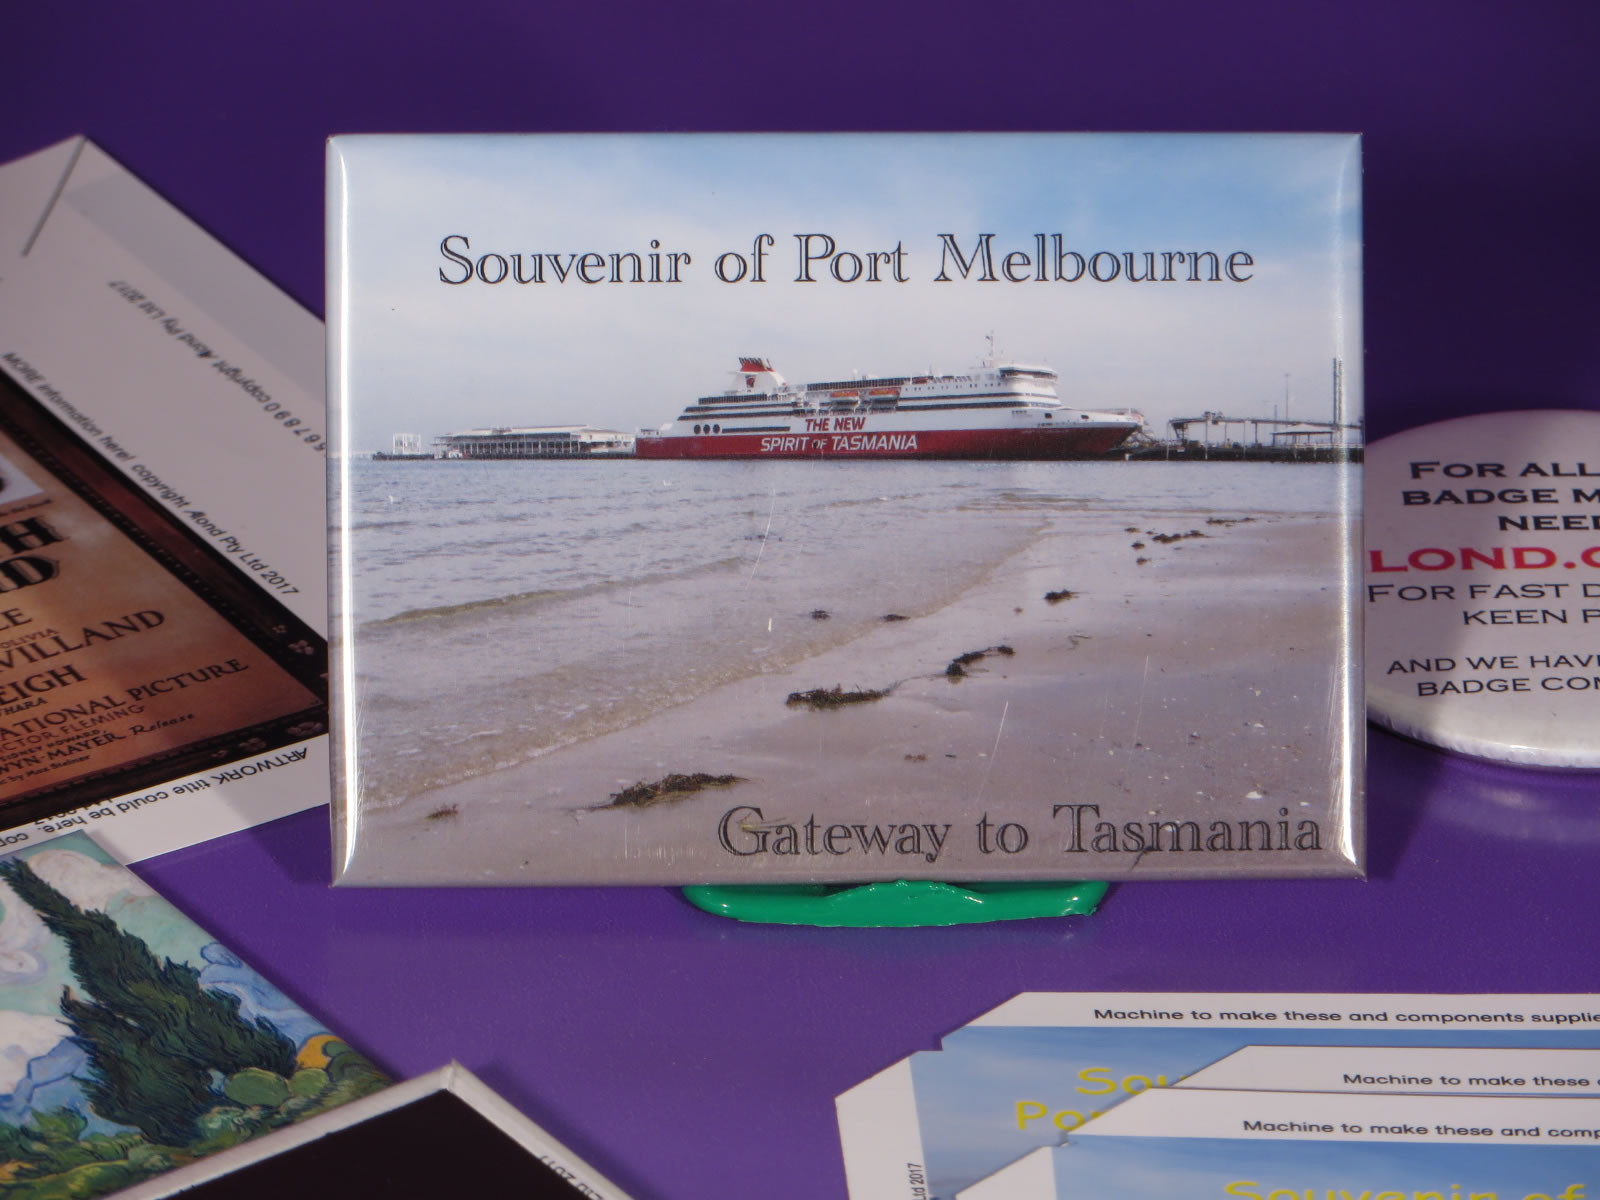 fridge magnets sold by museums and art galleries throughout the world